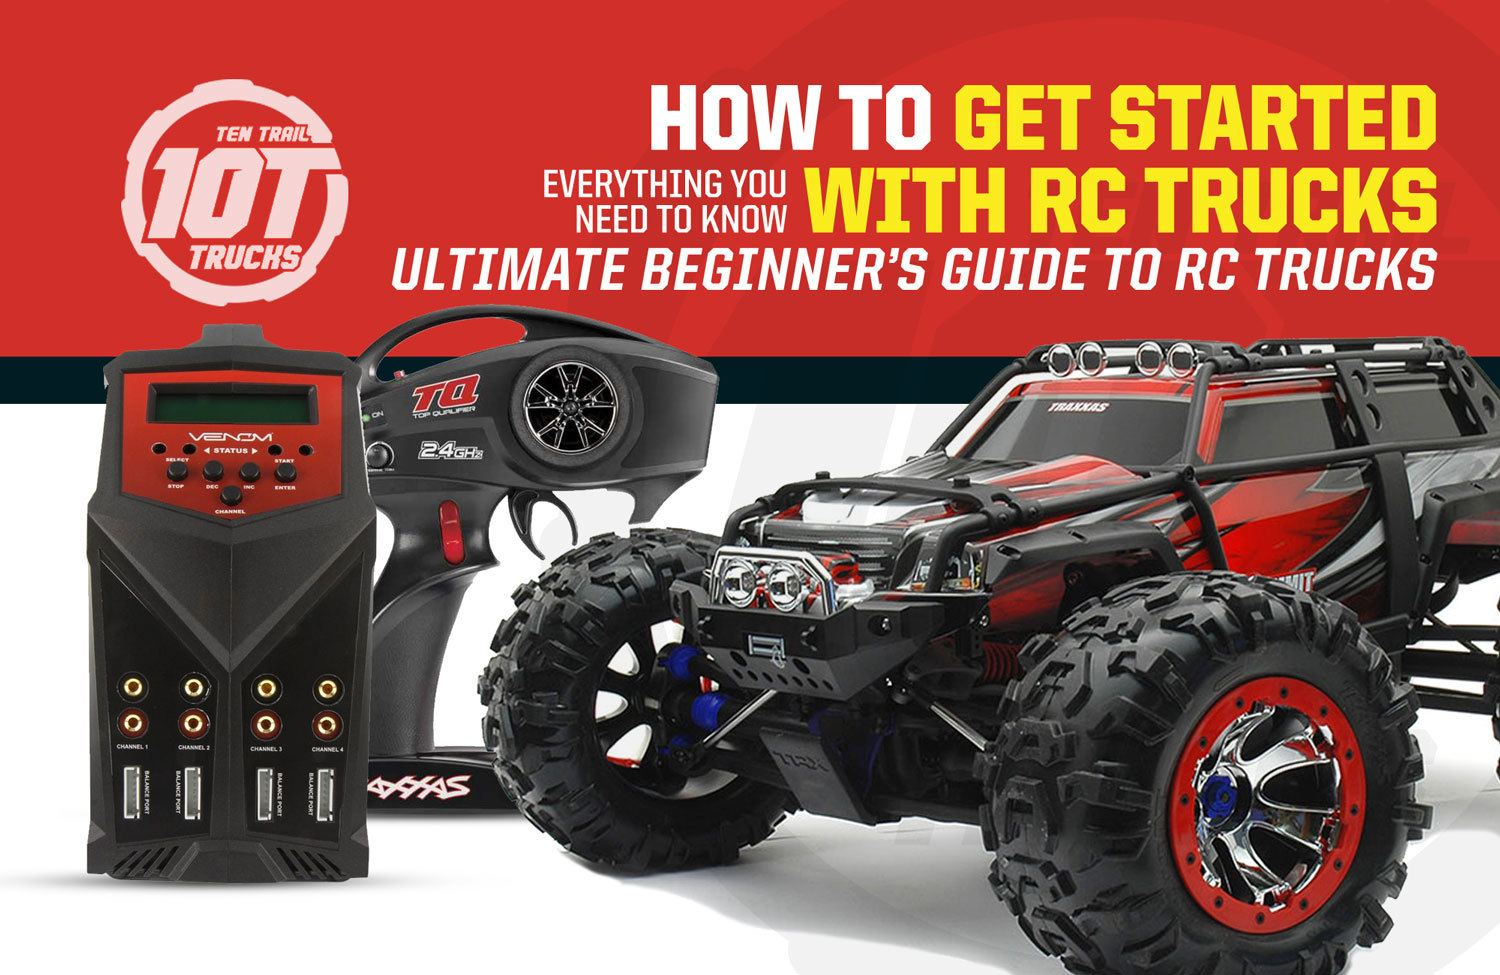 How To Get Started With RC Trucks